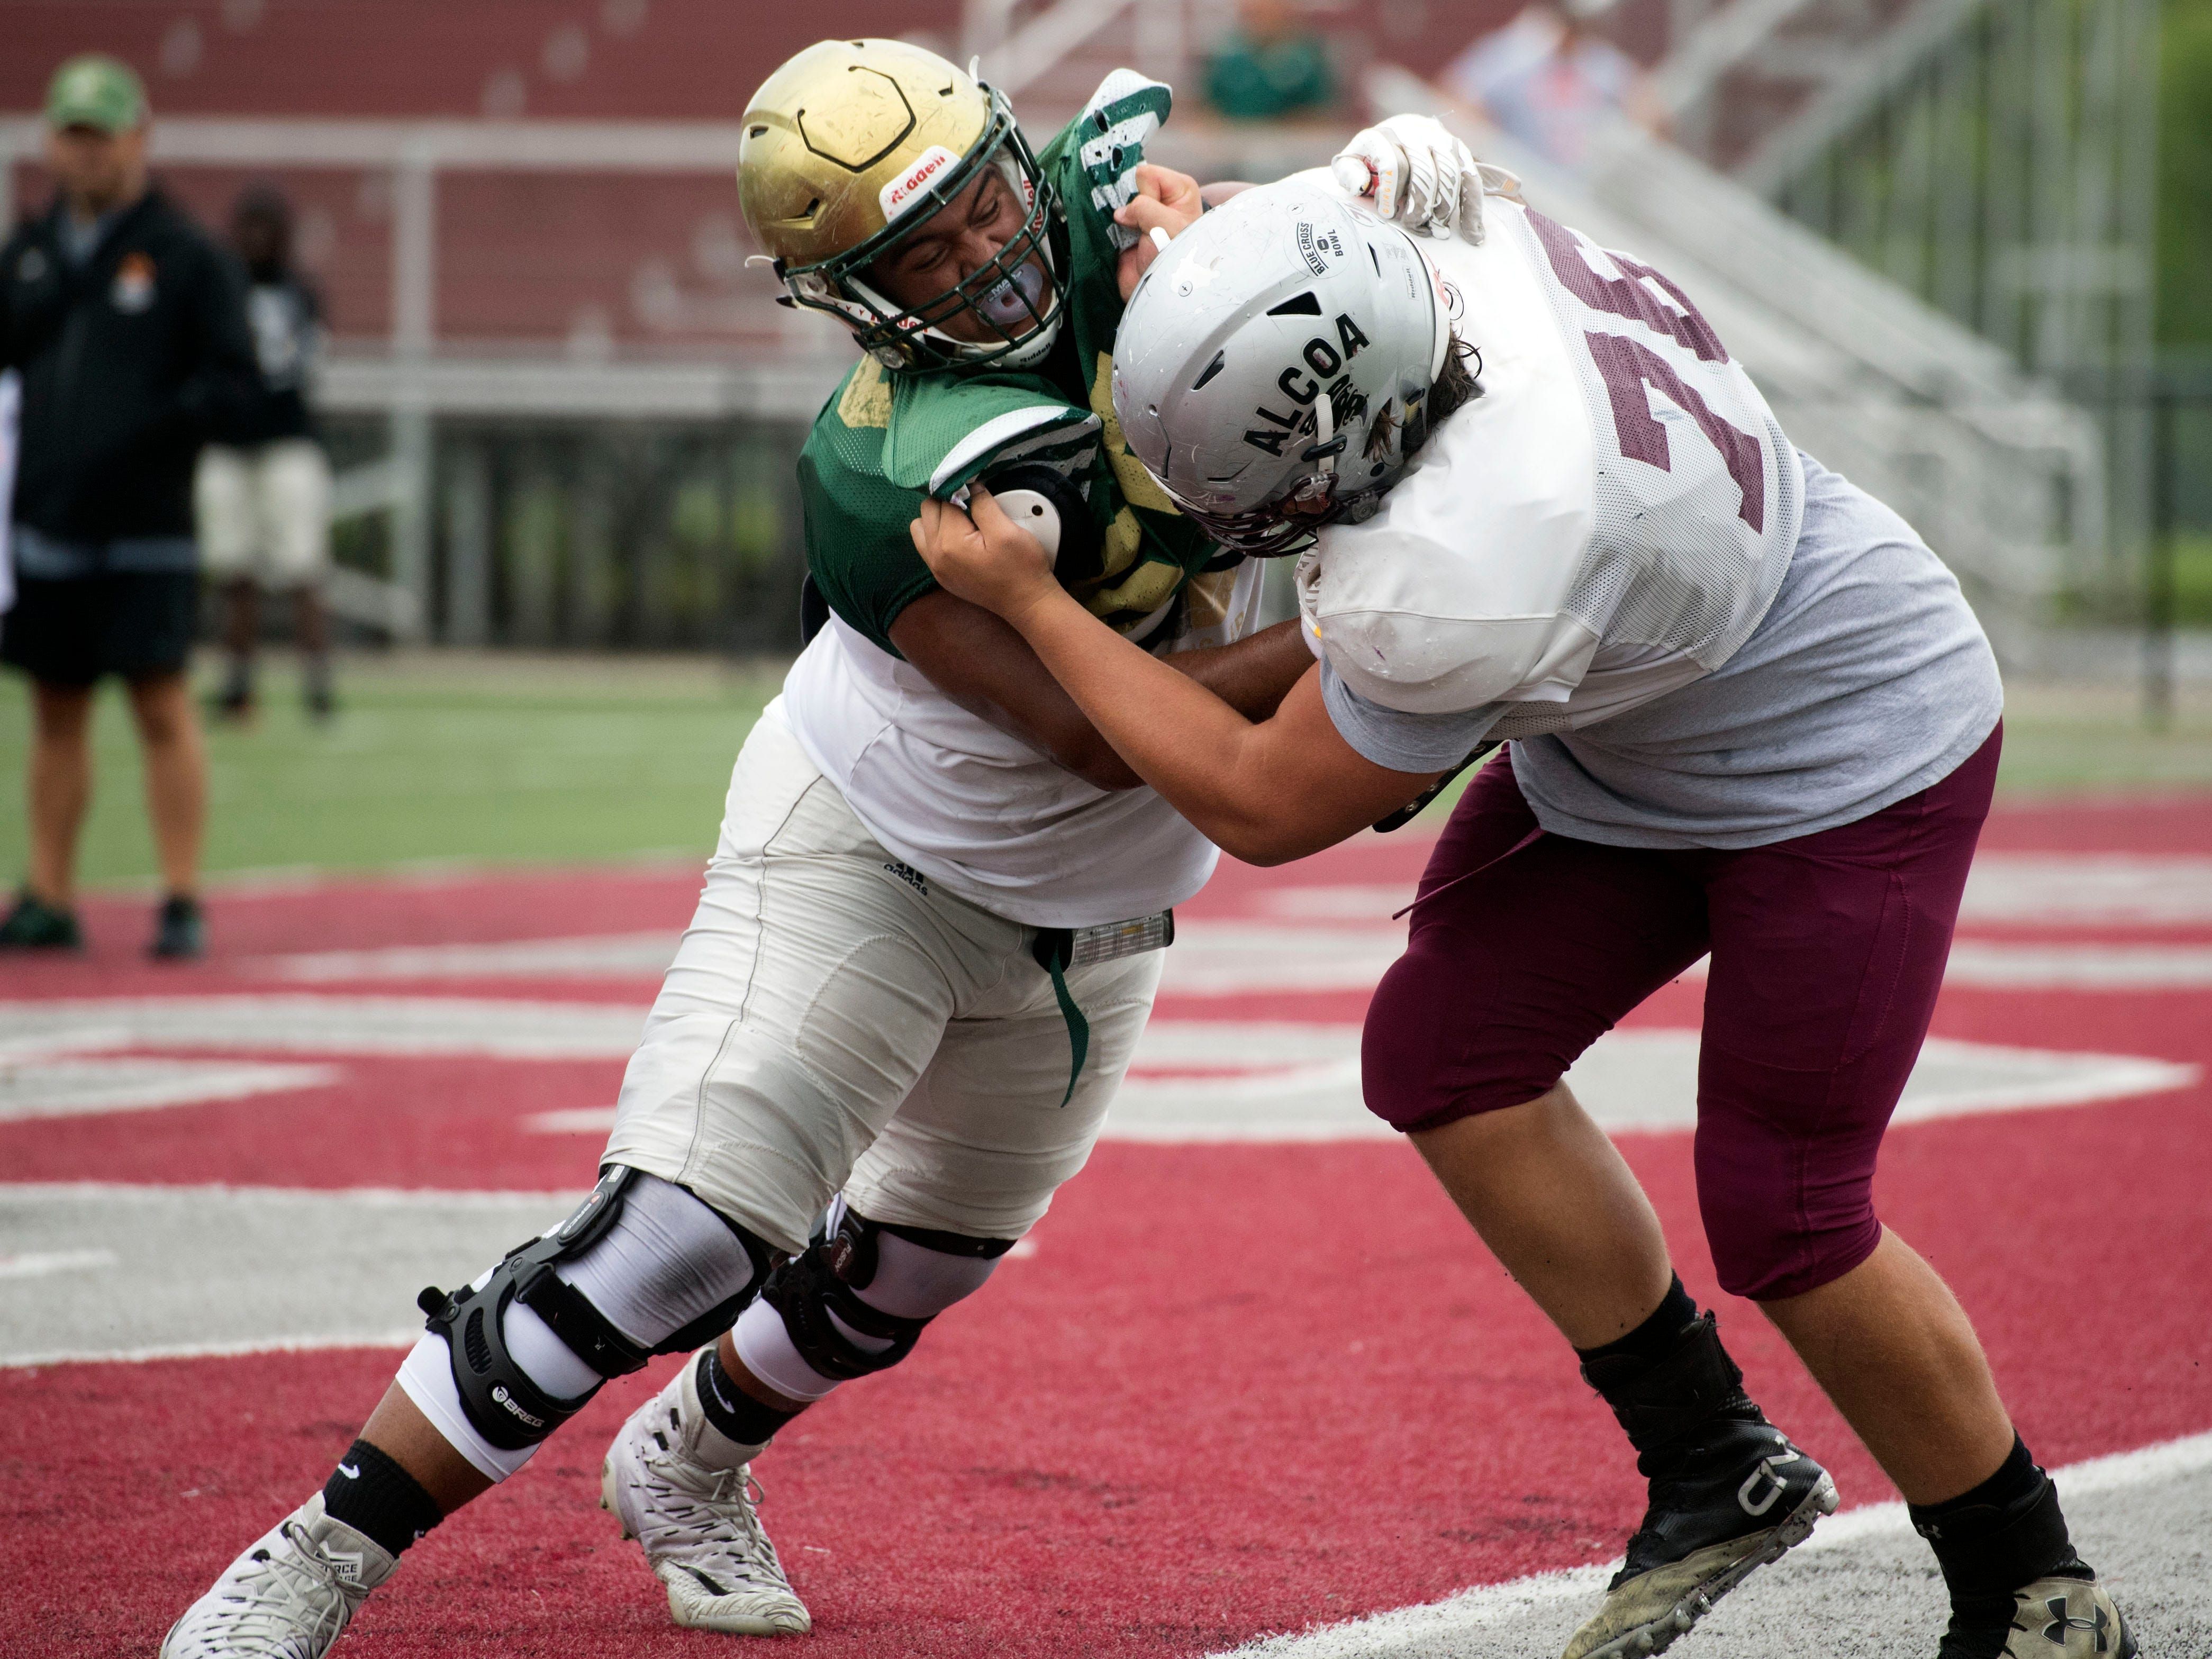 Knoxville Catholic's Bryn Tucker (55) and Alcoa's Brackston Alford (76) run drills before the start of their football scrimmage on Tuesday, July 31, 2018.